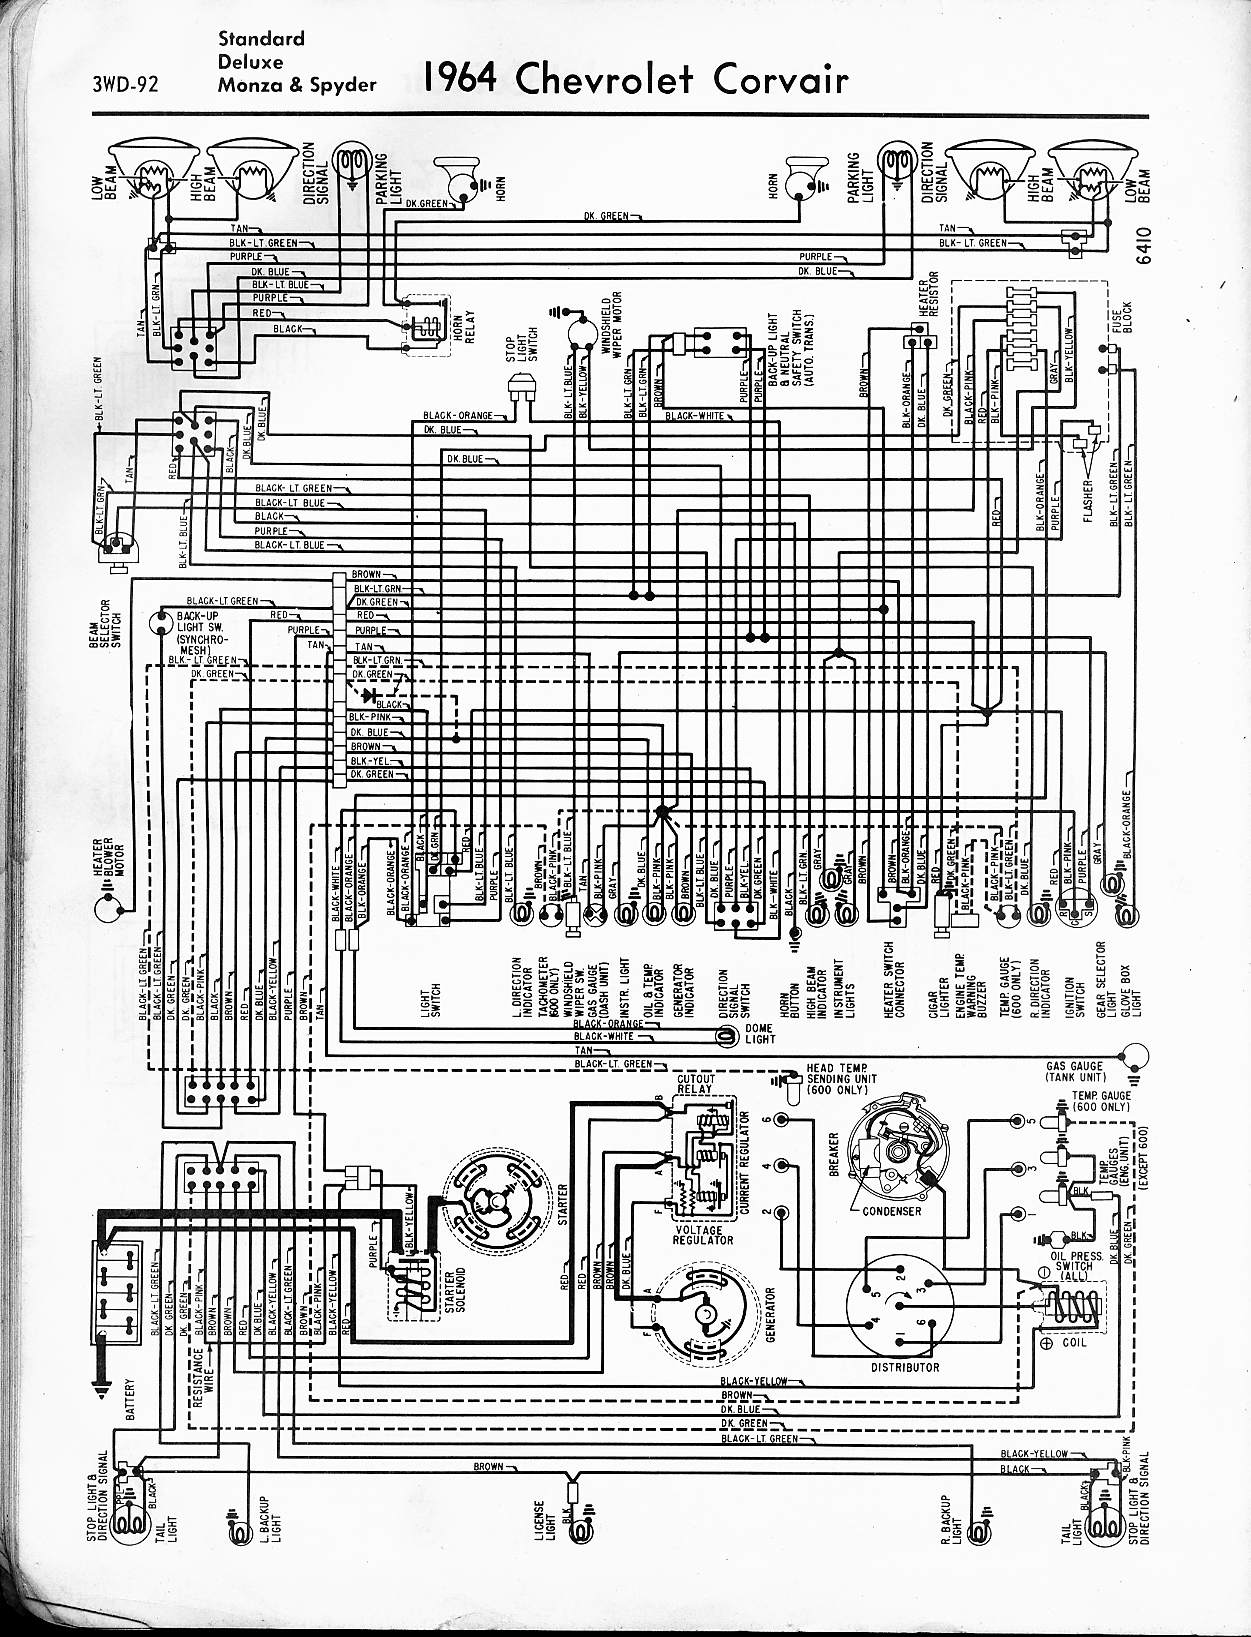 MWireChev64_3WD 092 57 65 chevy wiring diagrams 1965 corvair wiring diagram at soozxer.org